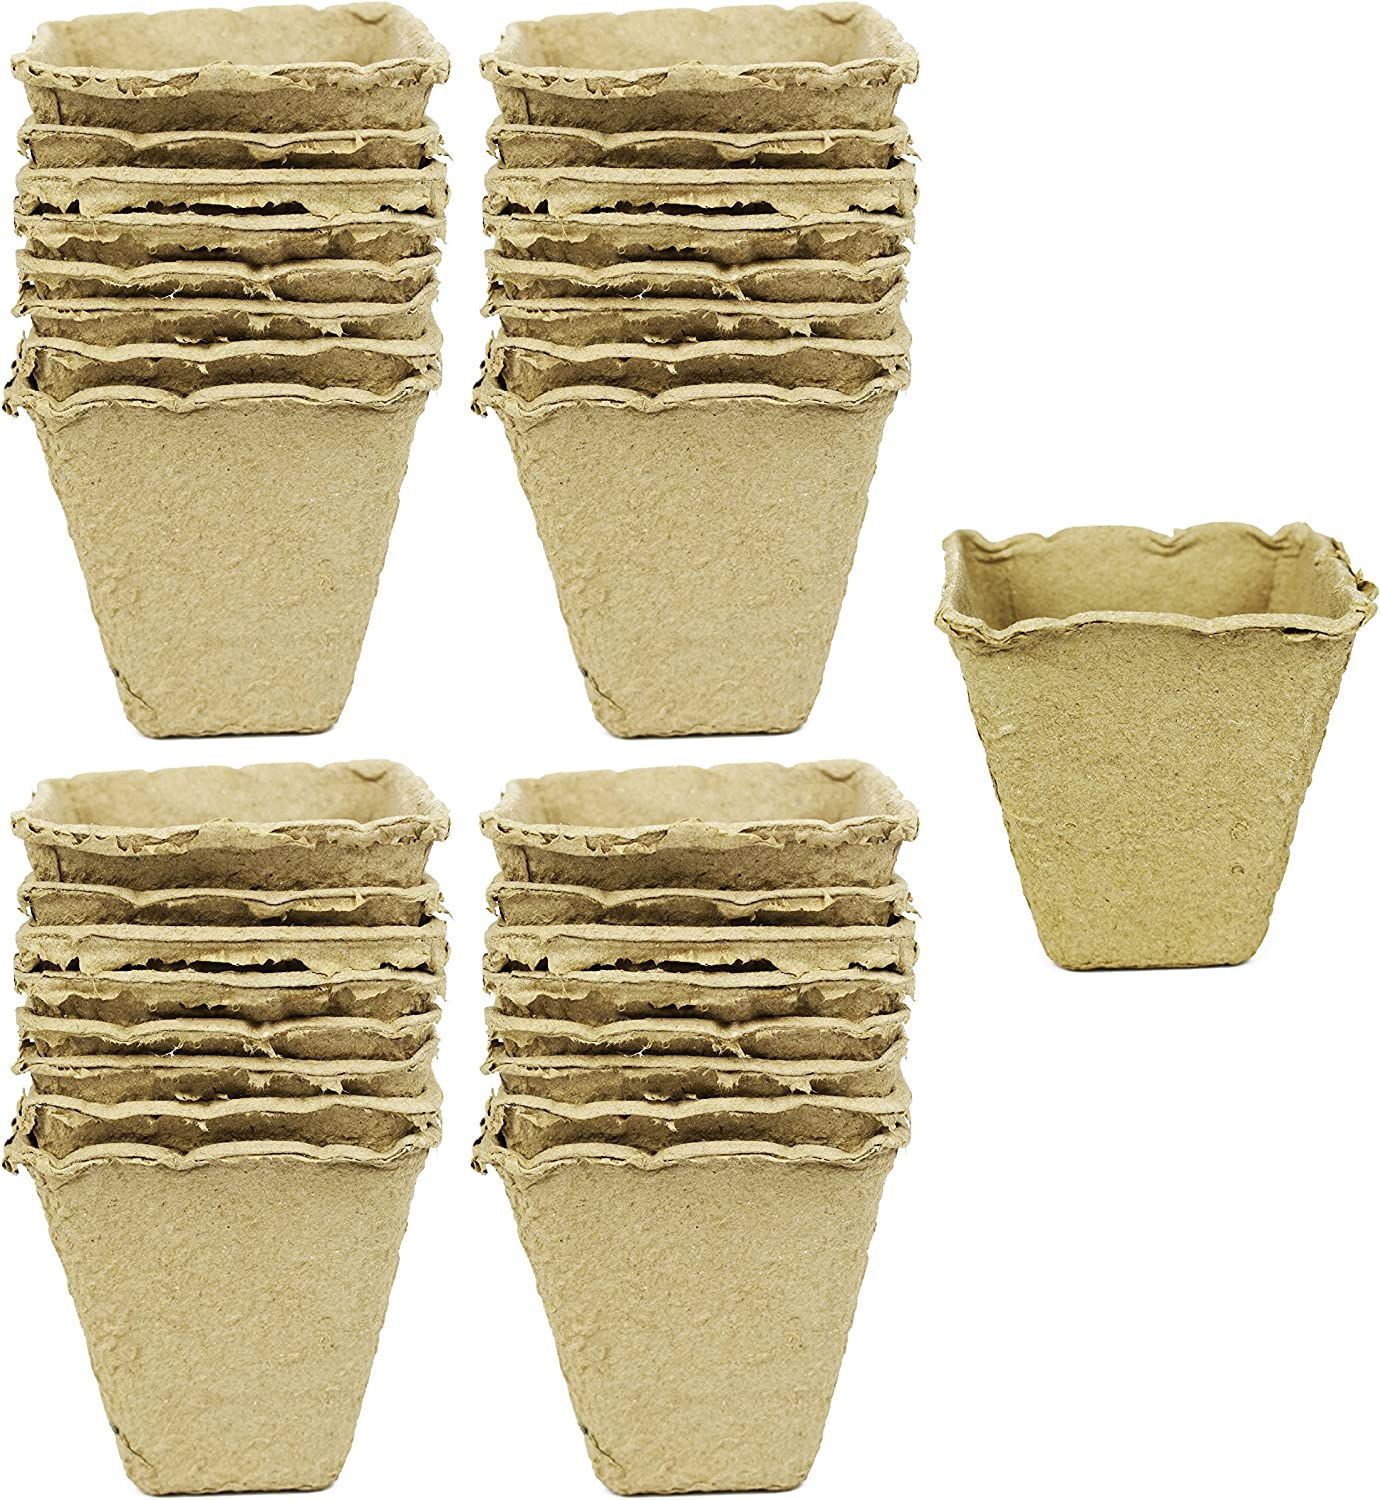 Set of 32 Biodegradable Eco Friendly Peat Pots 3 – 12 Pot Tray – Recycled Non Bleached Peat Pots Perfect for Seed Germination No Transplanting Required – No More Damaged Roots